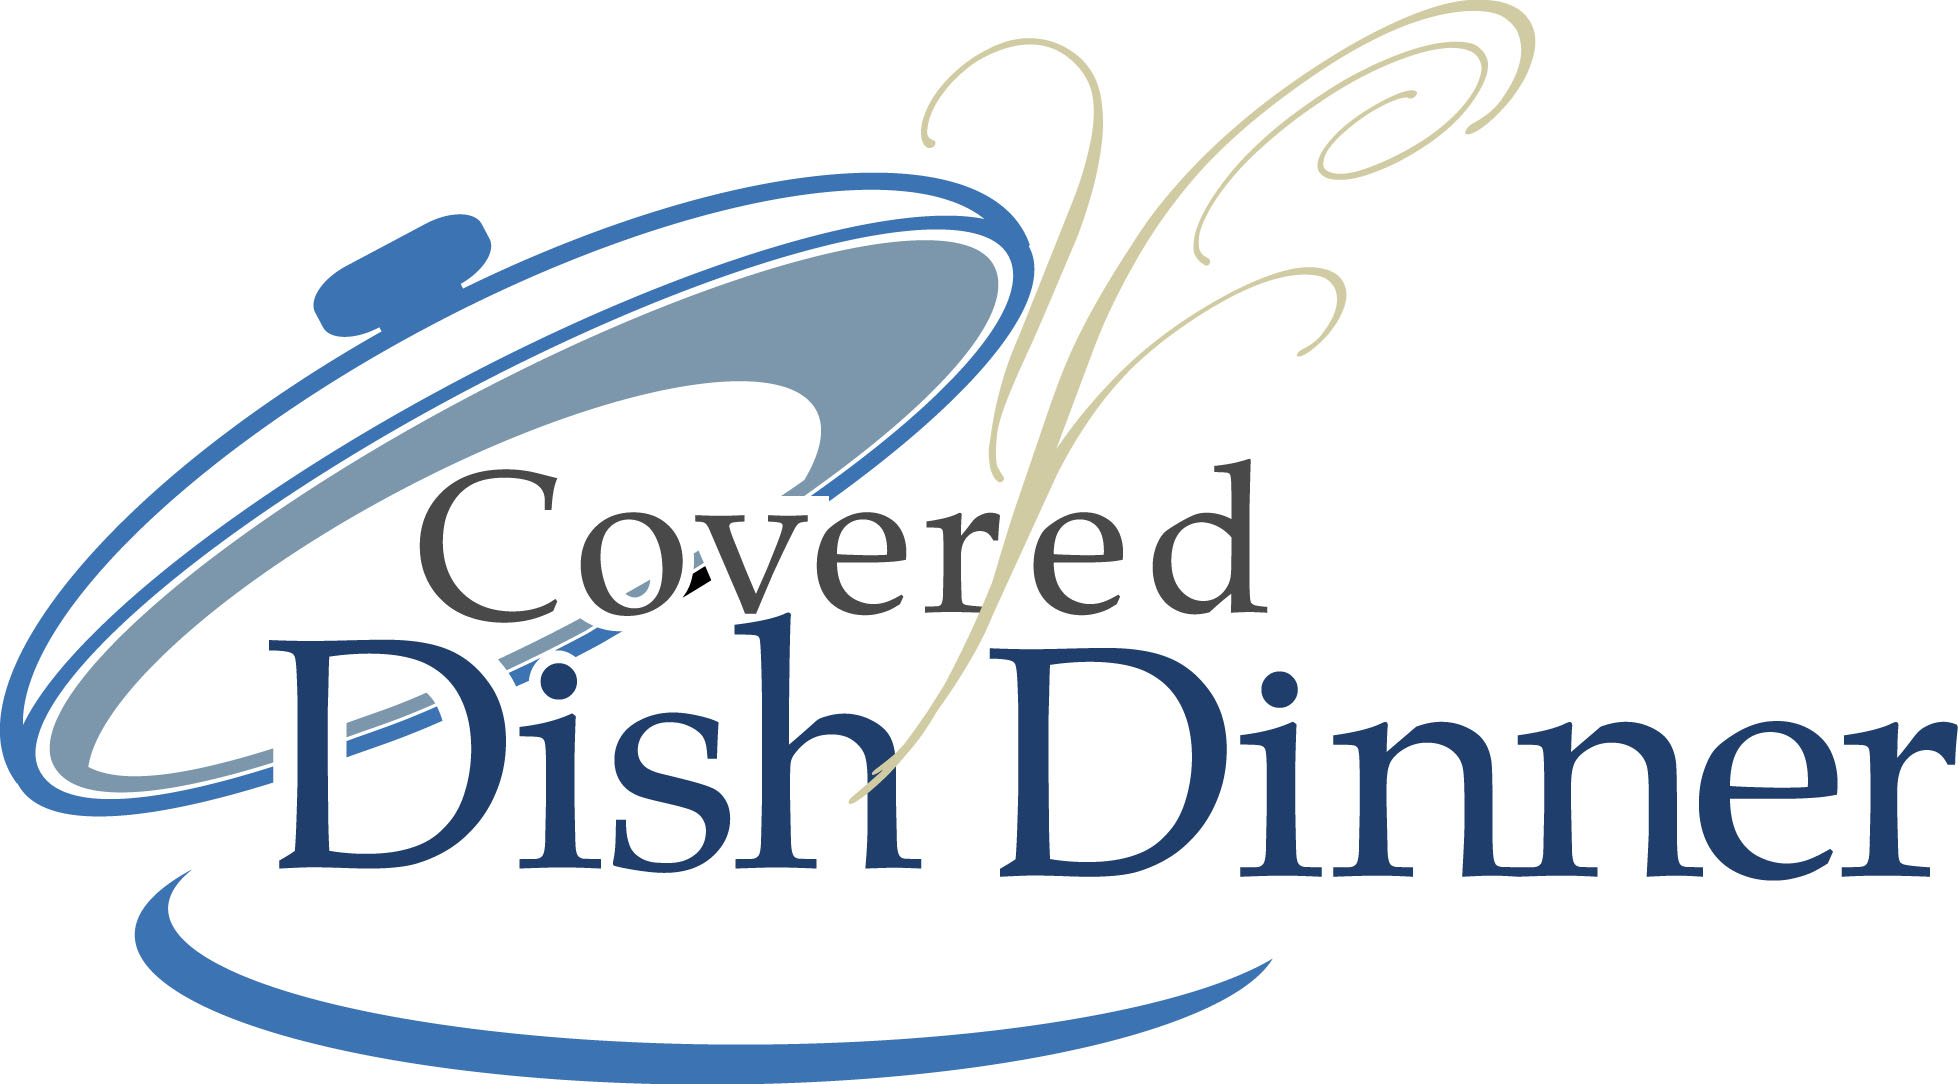 Luncheon clipart covered dish, Luncheon covered dish.